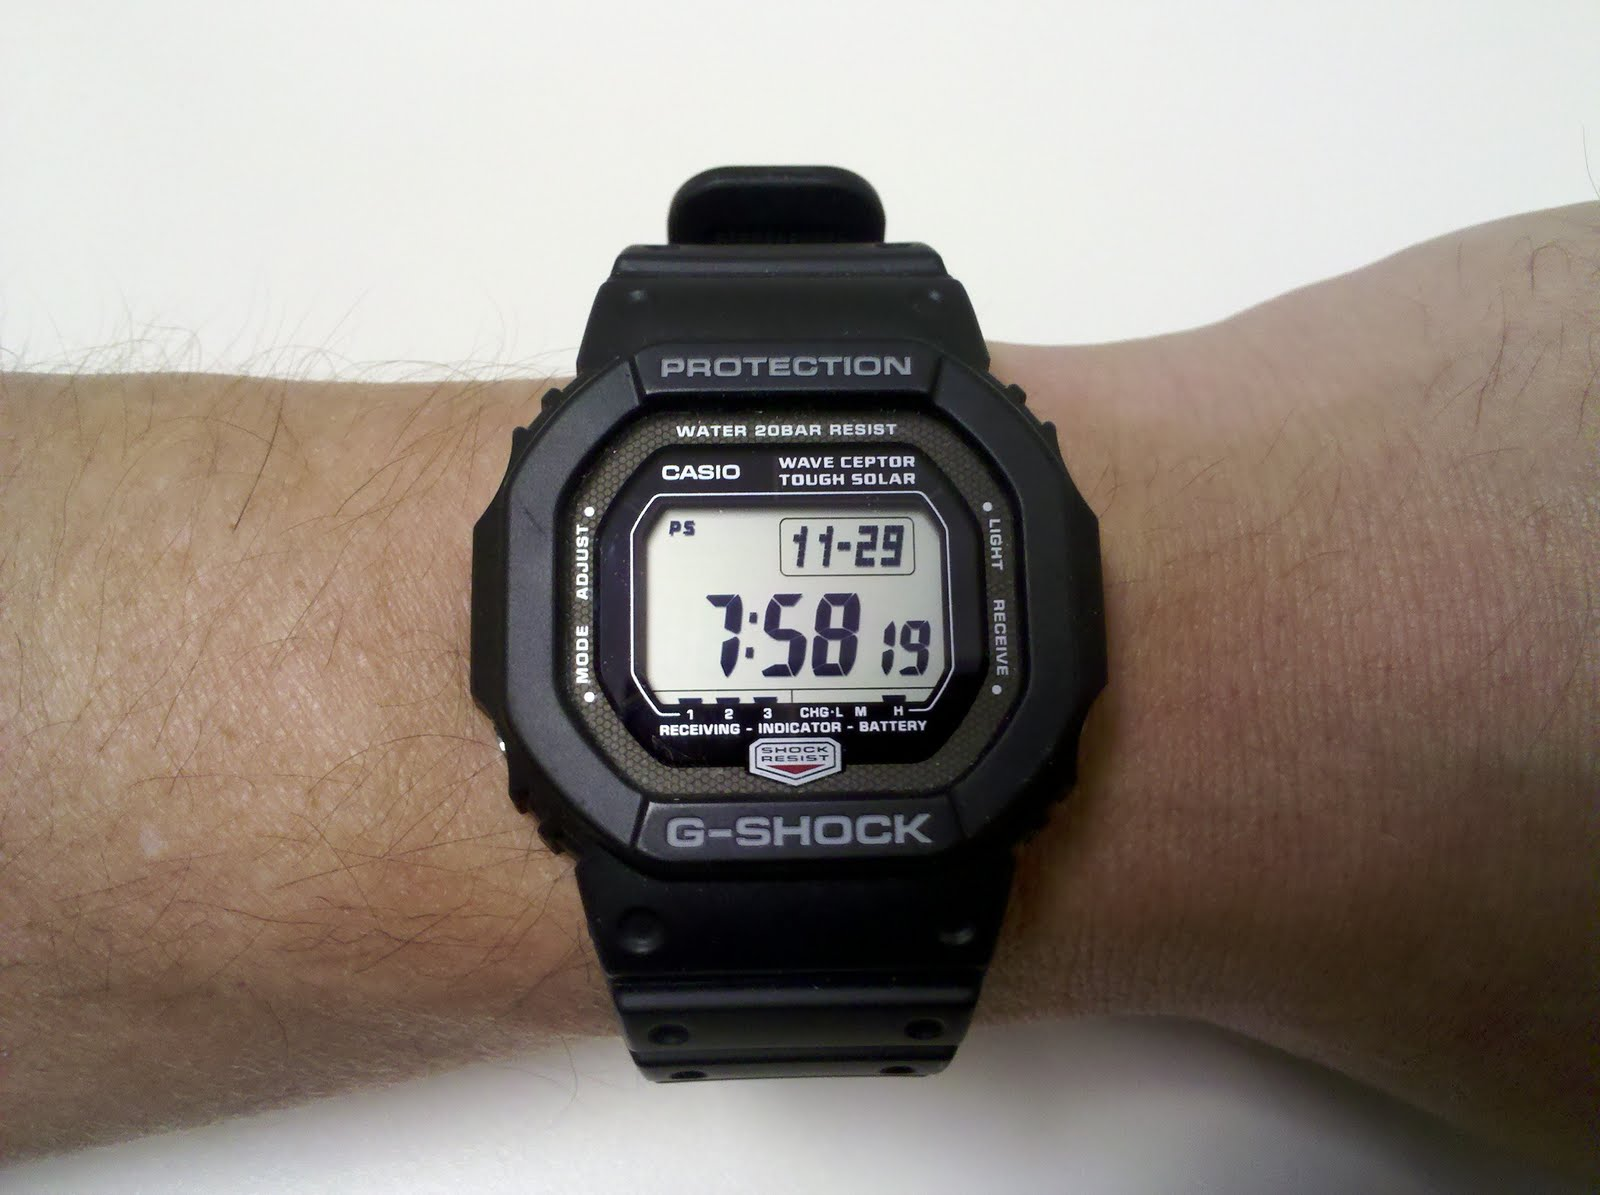 Casio G Shock GWM 5600 Solar Atomic